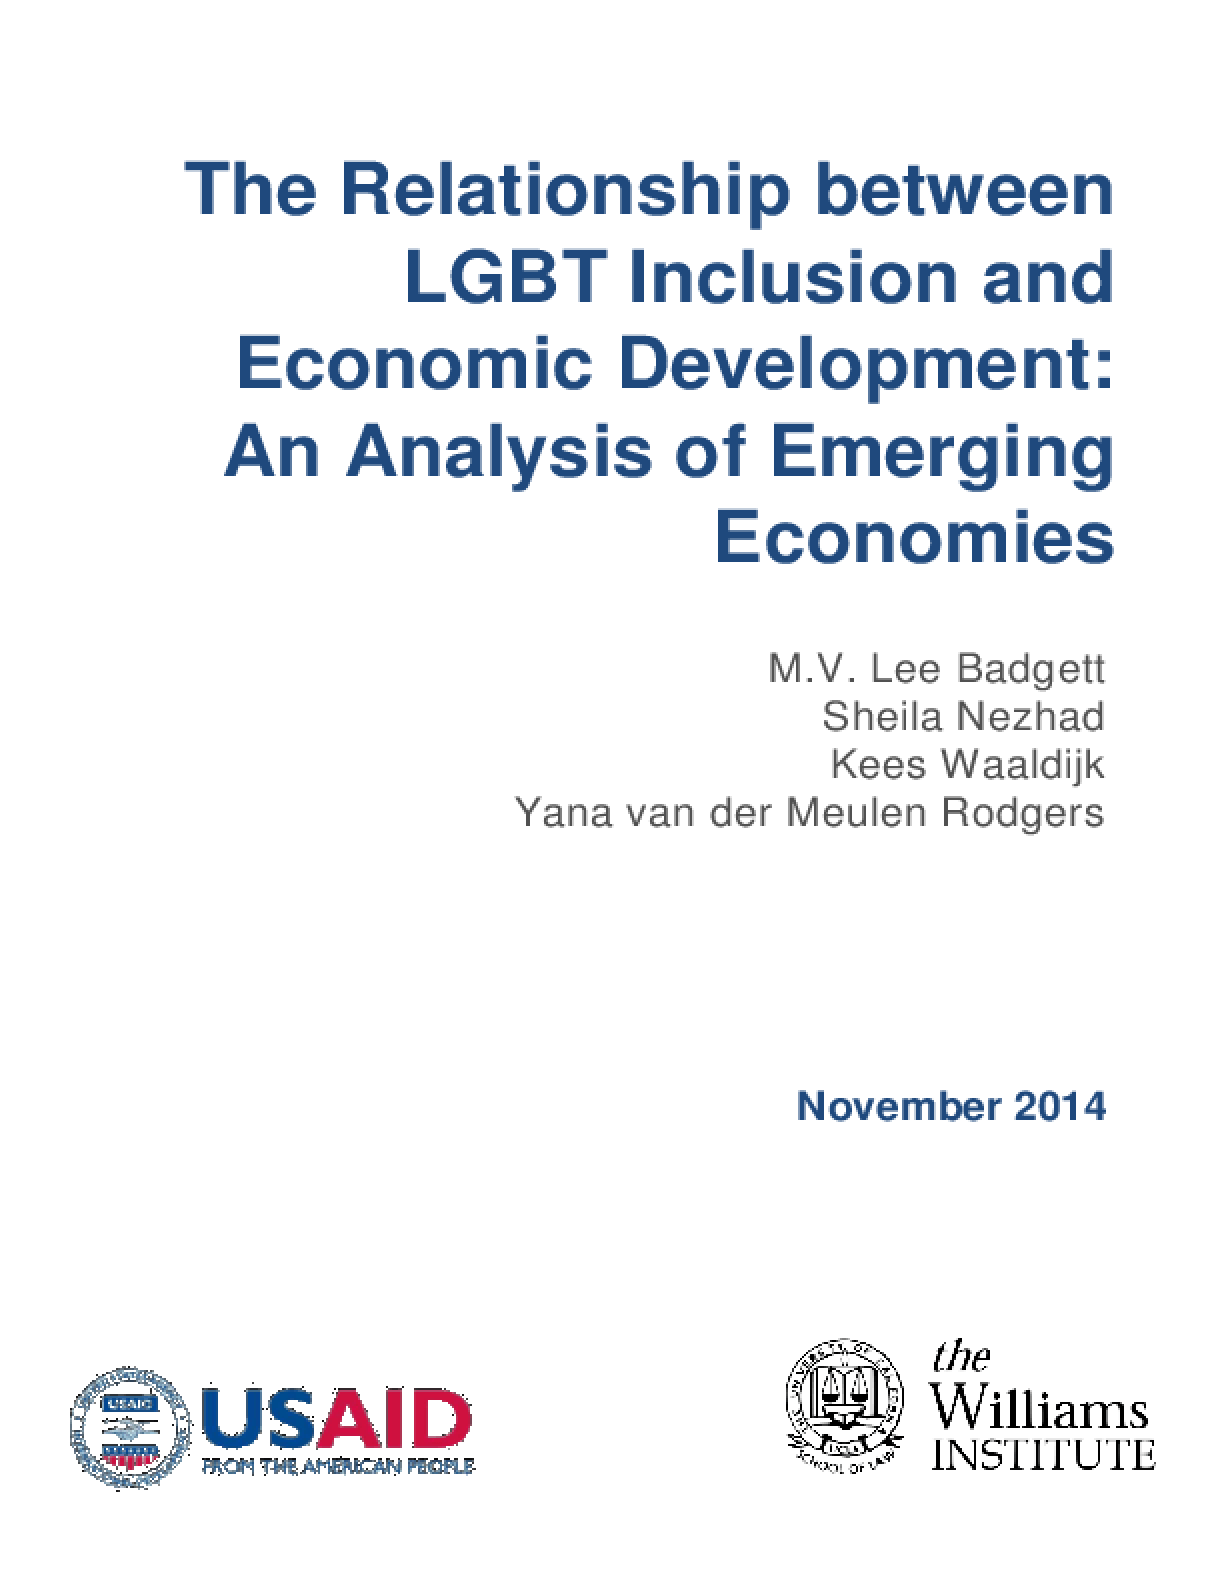 The Relationship Between LGBT Inclusion and Economic Development: An Analysis of Emerging Economies